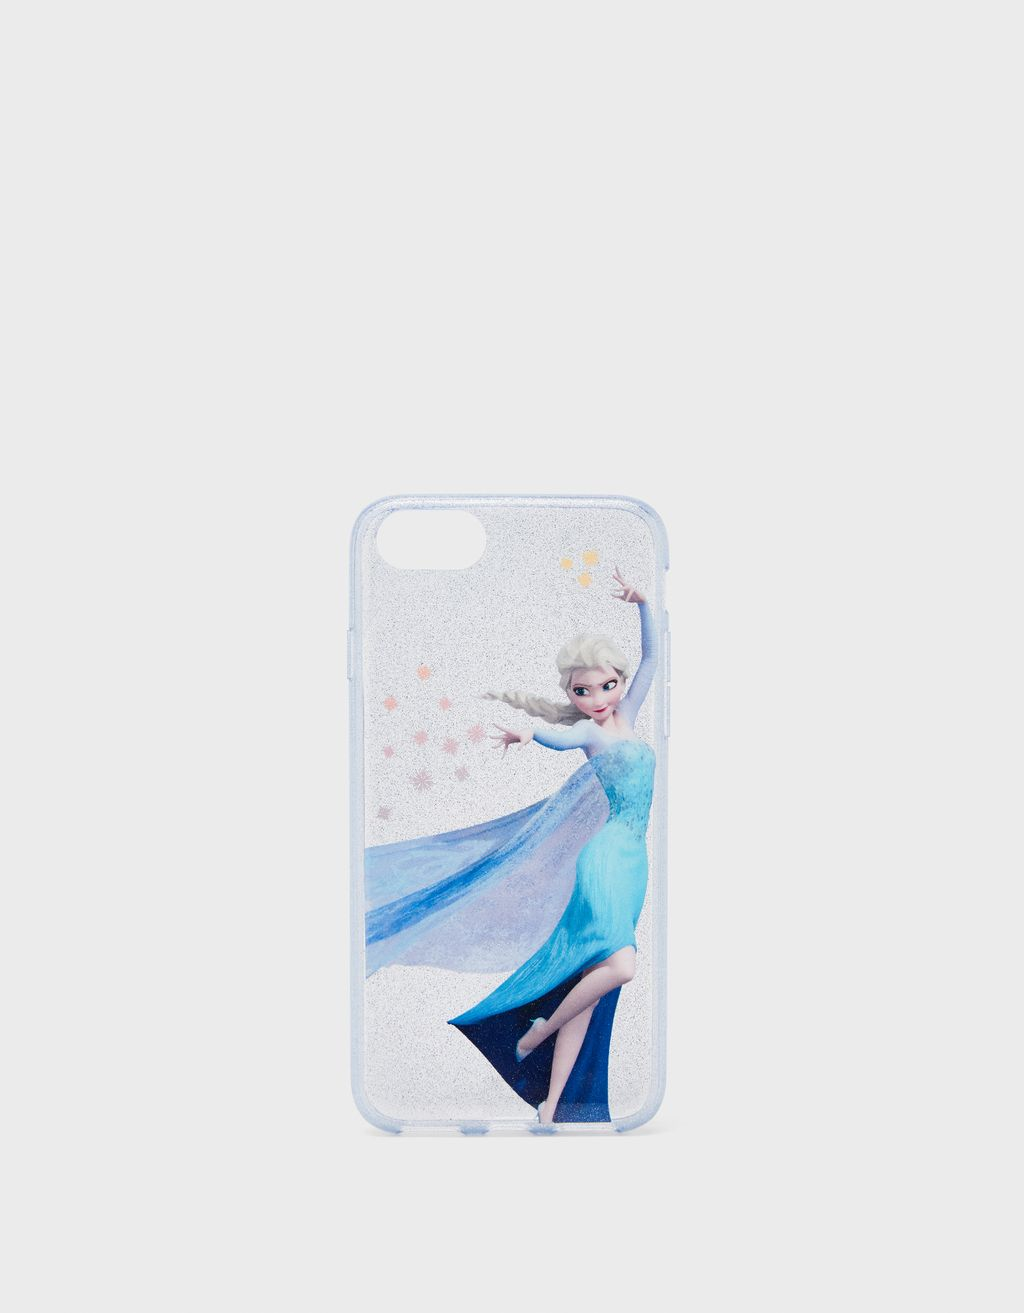 Carcasa Frozen iPhone 6 / 6S / 7 / 8